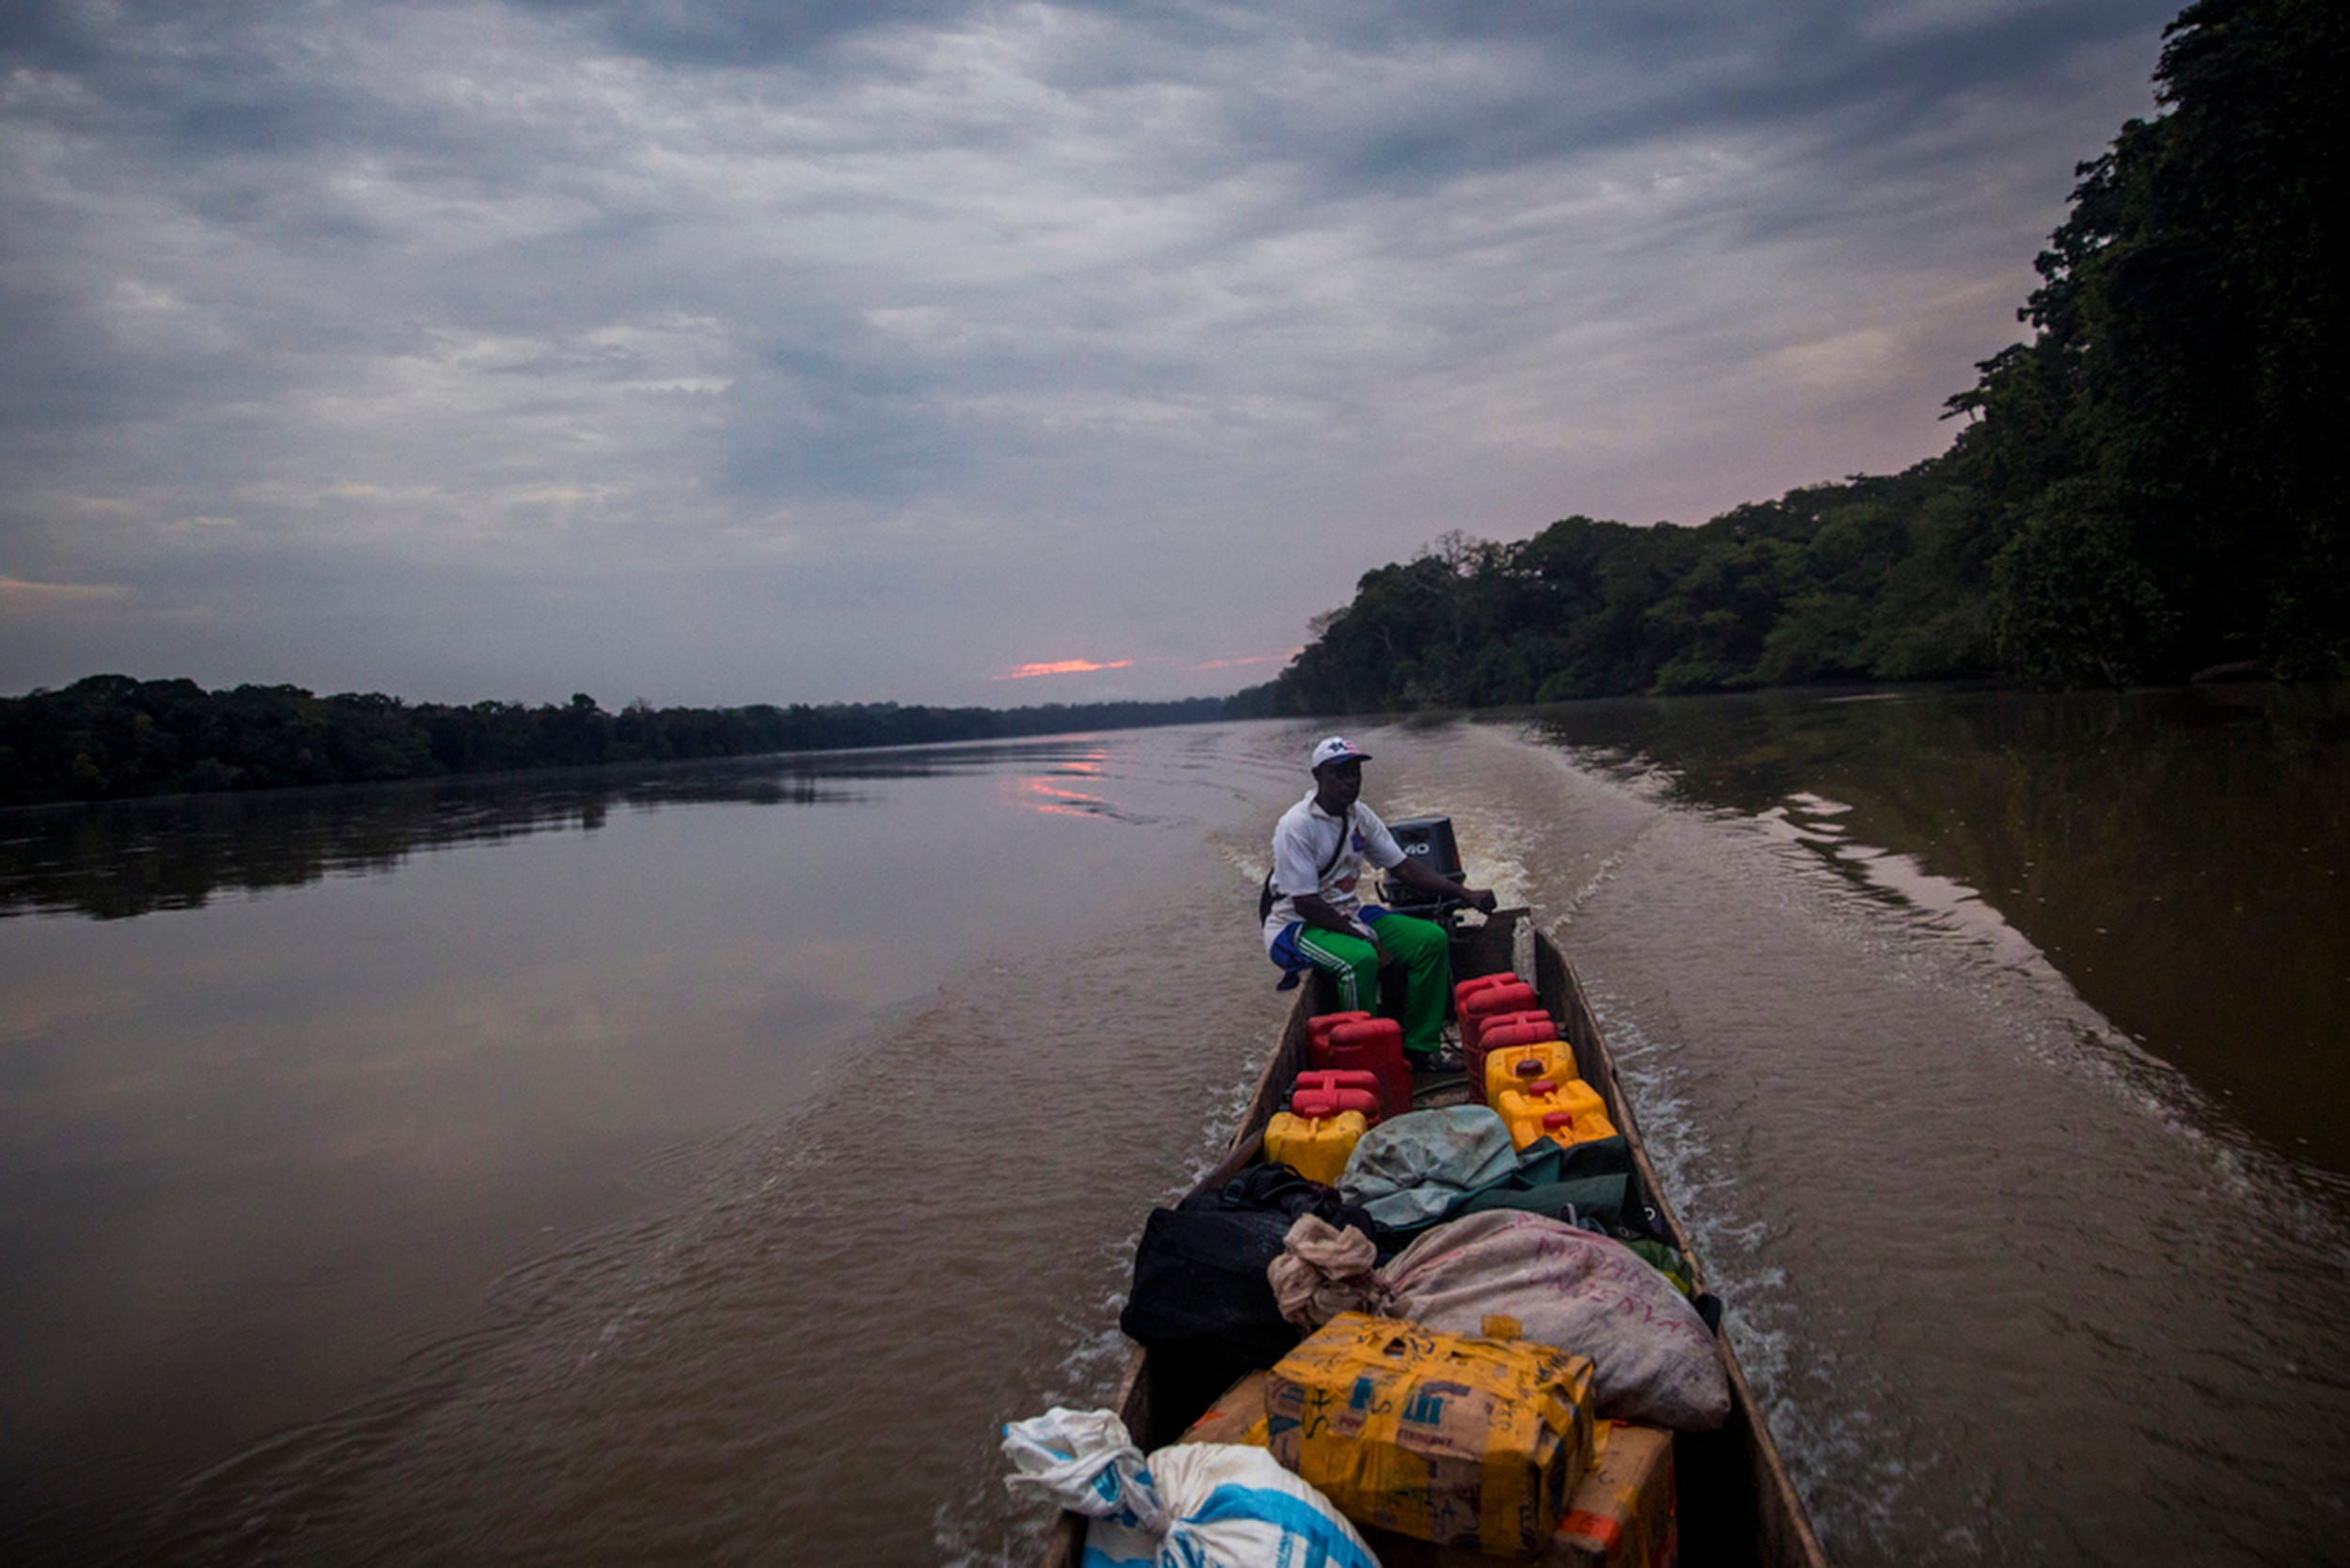 The sun slowly rises as we embark on our five-hour adventure down the Sangha River to the town of Ouésso.